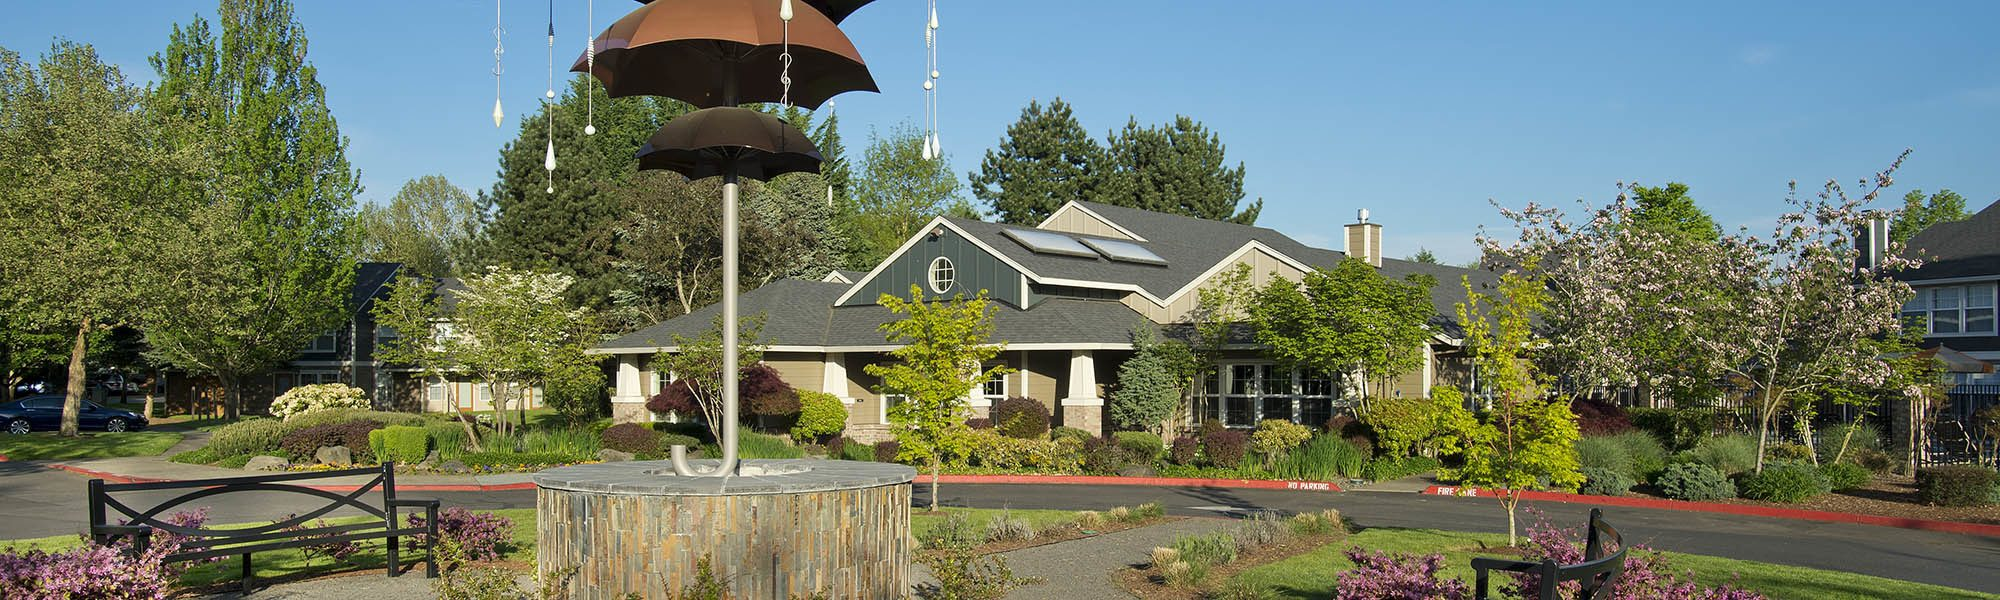 Learn about our neighborhood at Slate Ridge at Fisher's Landing Apartment Homes in Vancouver, WA on our website